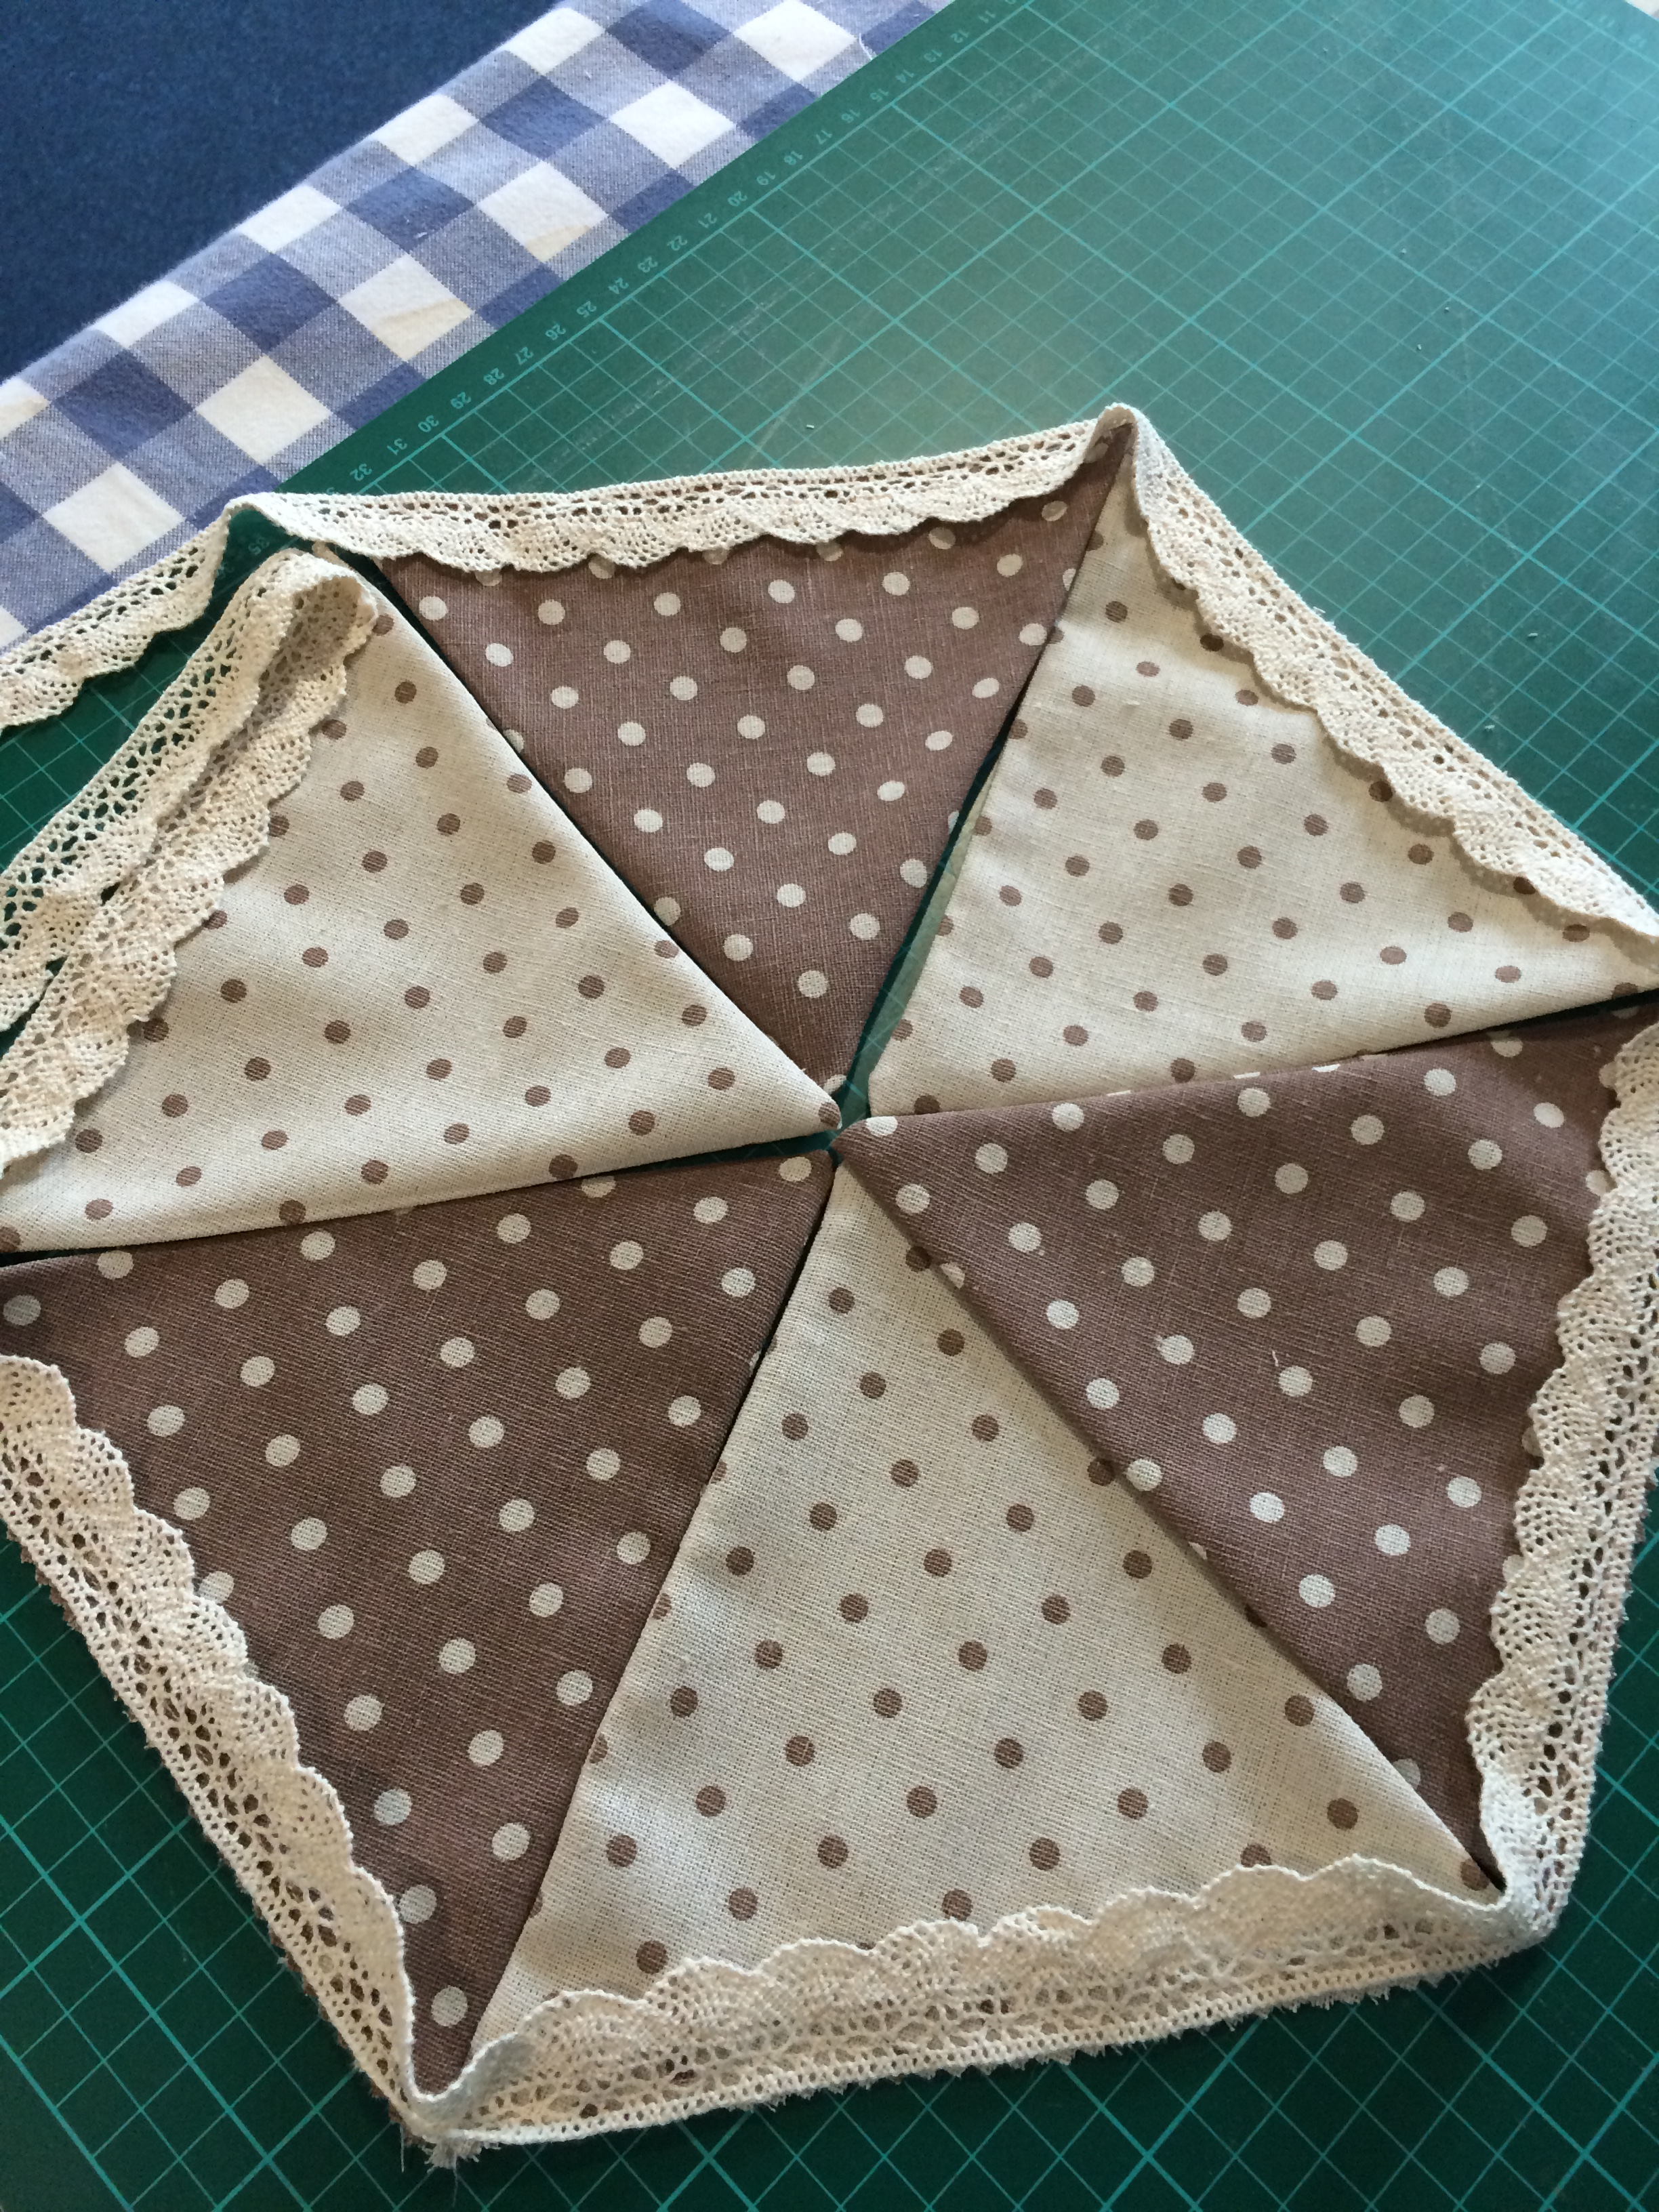 Polka bunting with Lace trim